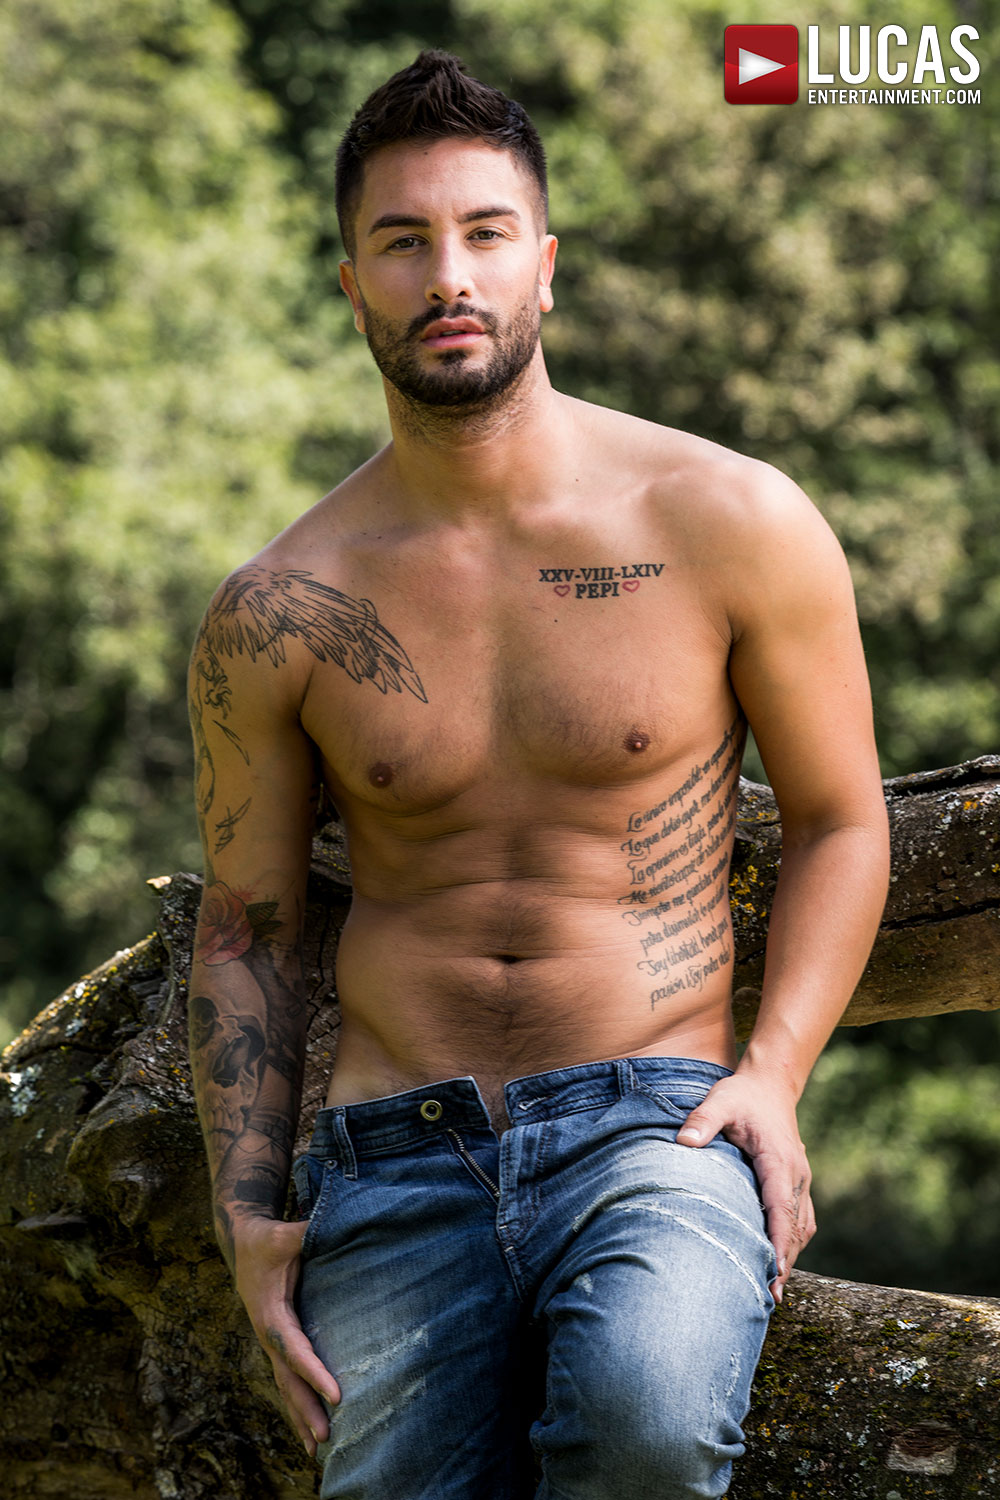 Andrea Suarez - Gay Model - Lucas Entertainment